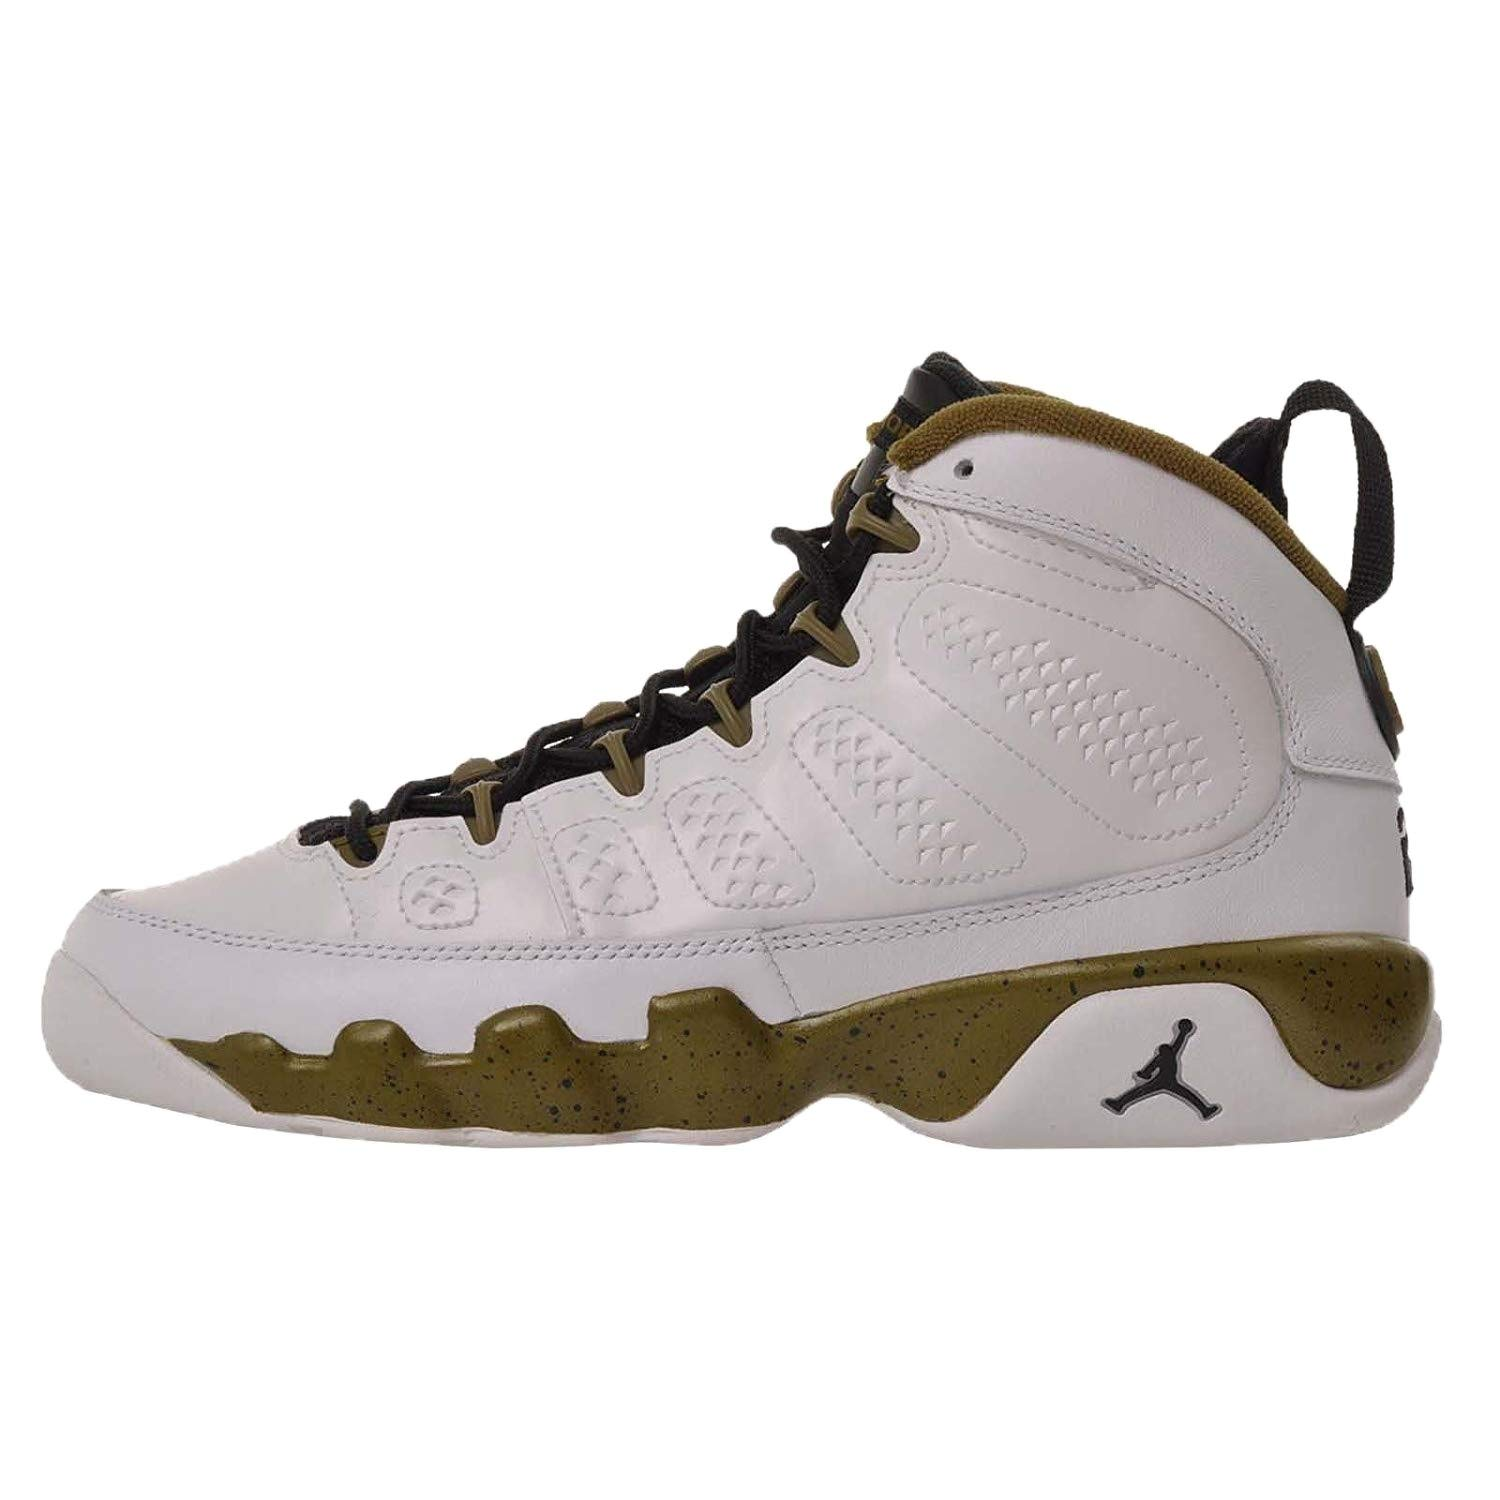 more photos 9eee8 4bfe4 Amazon.com   Nike Air Jordan 9 Retro BG (white   black   militia green)  Kids Basketball Shoes, Size 6 Y   Running